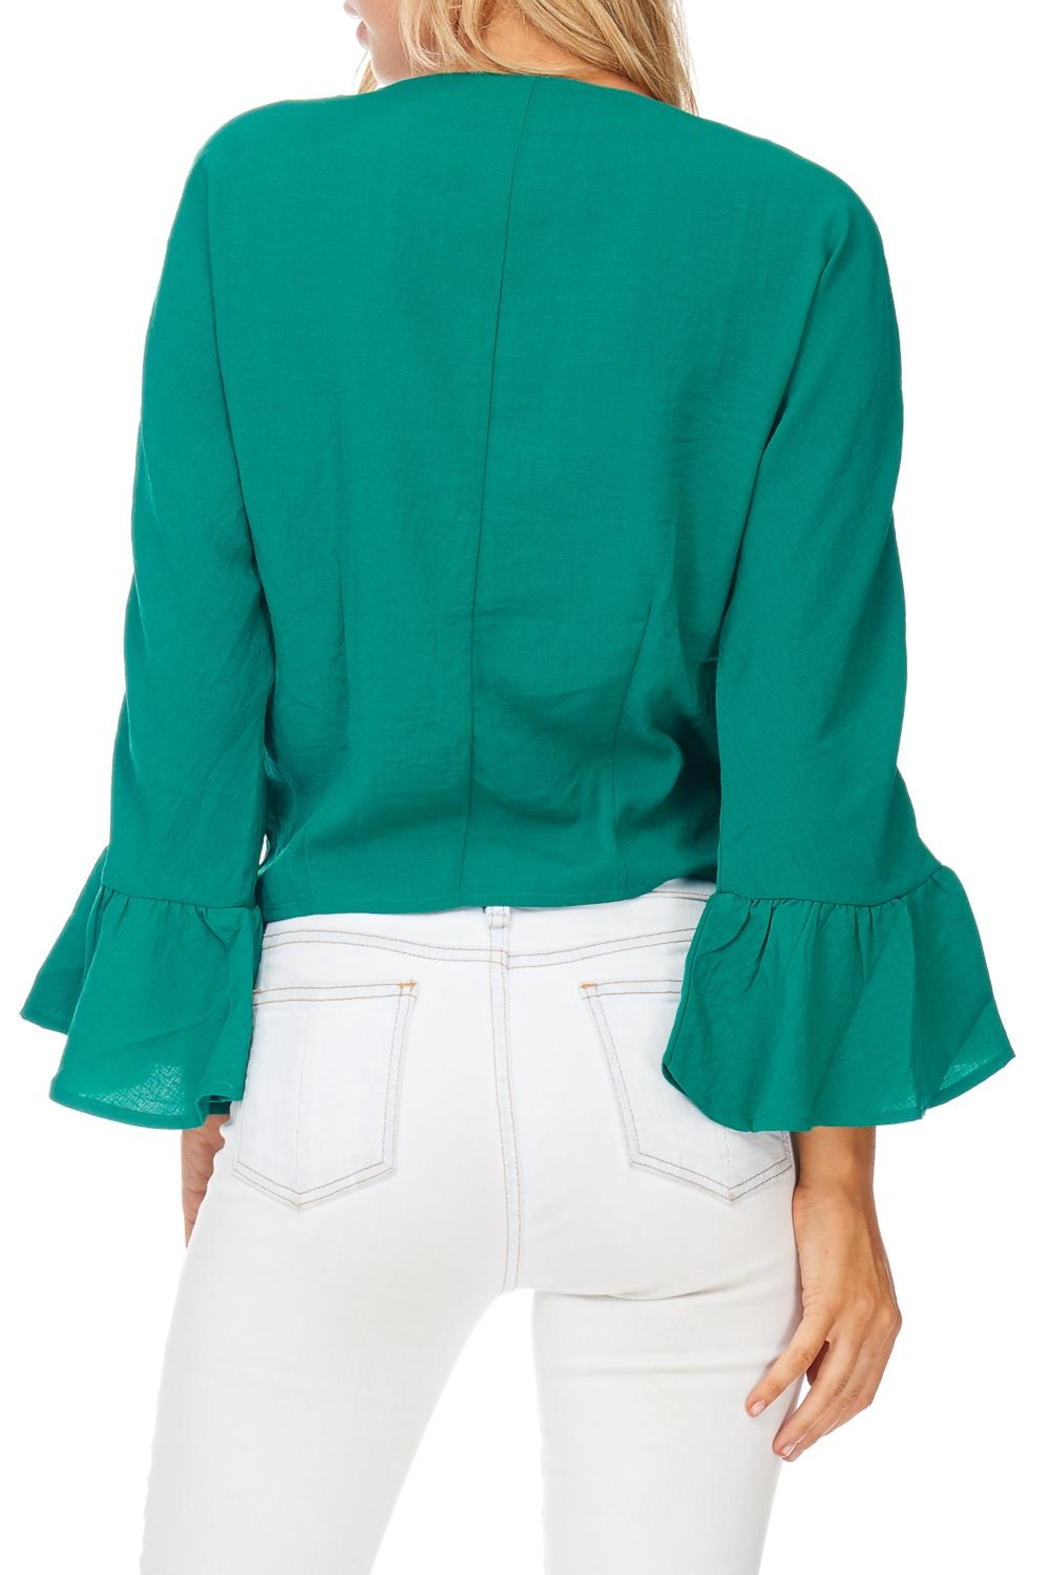 Miss Love Jade Bell Sleeve Blouse - Back Cropped Image